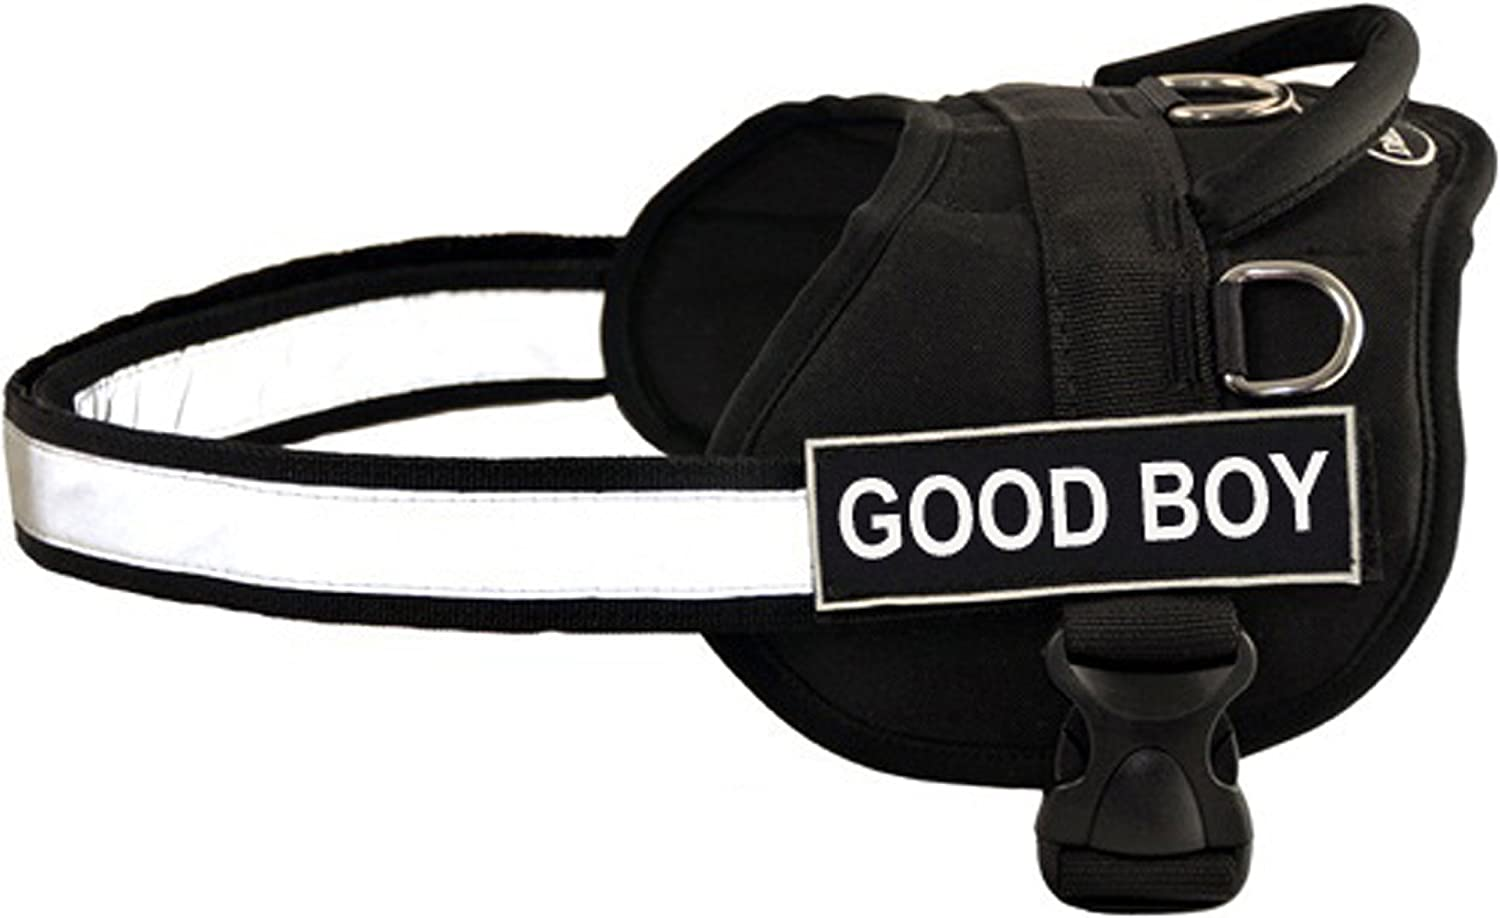 Dean &Tyler D &T WFON GOODB BKXXS Works Fun Harness, Good Boy, XXSmallFits Girth, 46cm a 53cm, Black /White